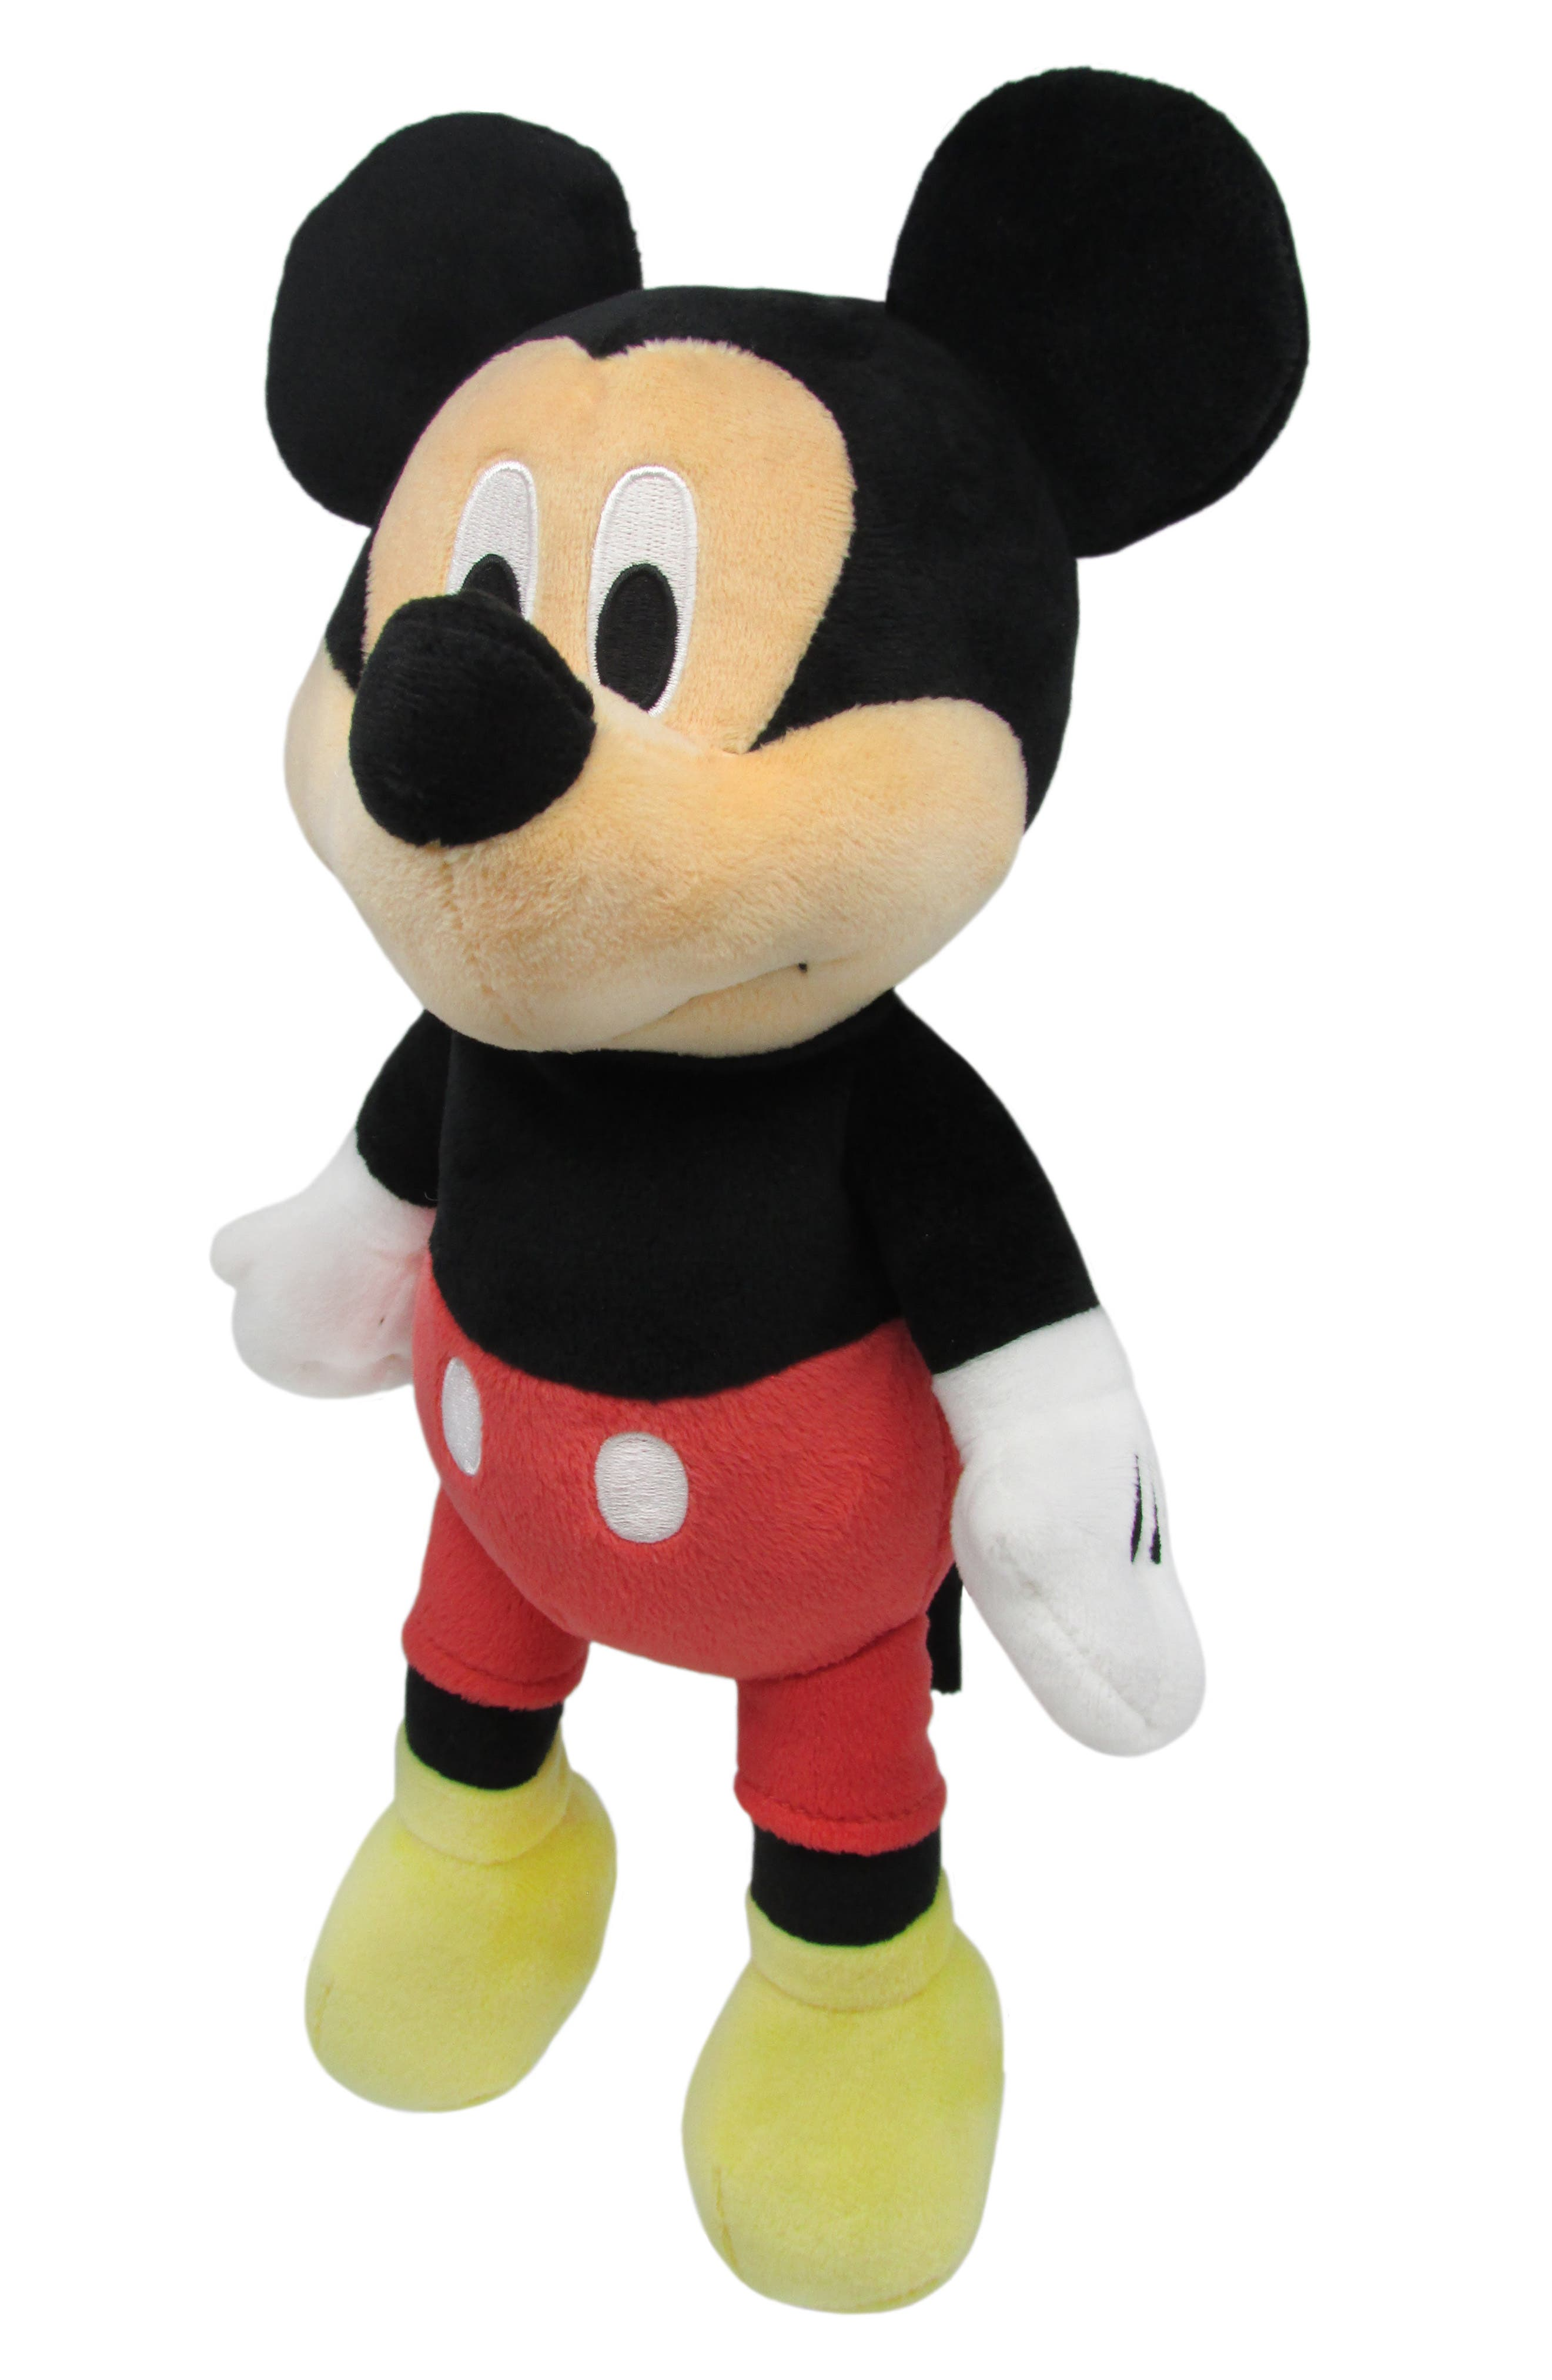 KIDS PREFERRED,                             Mickey Mouse Plush Toy,                             Main thumbnail 1, color,                             MULTICOLOR